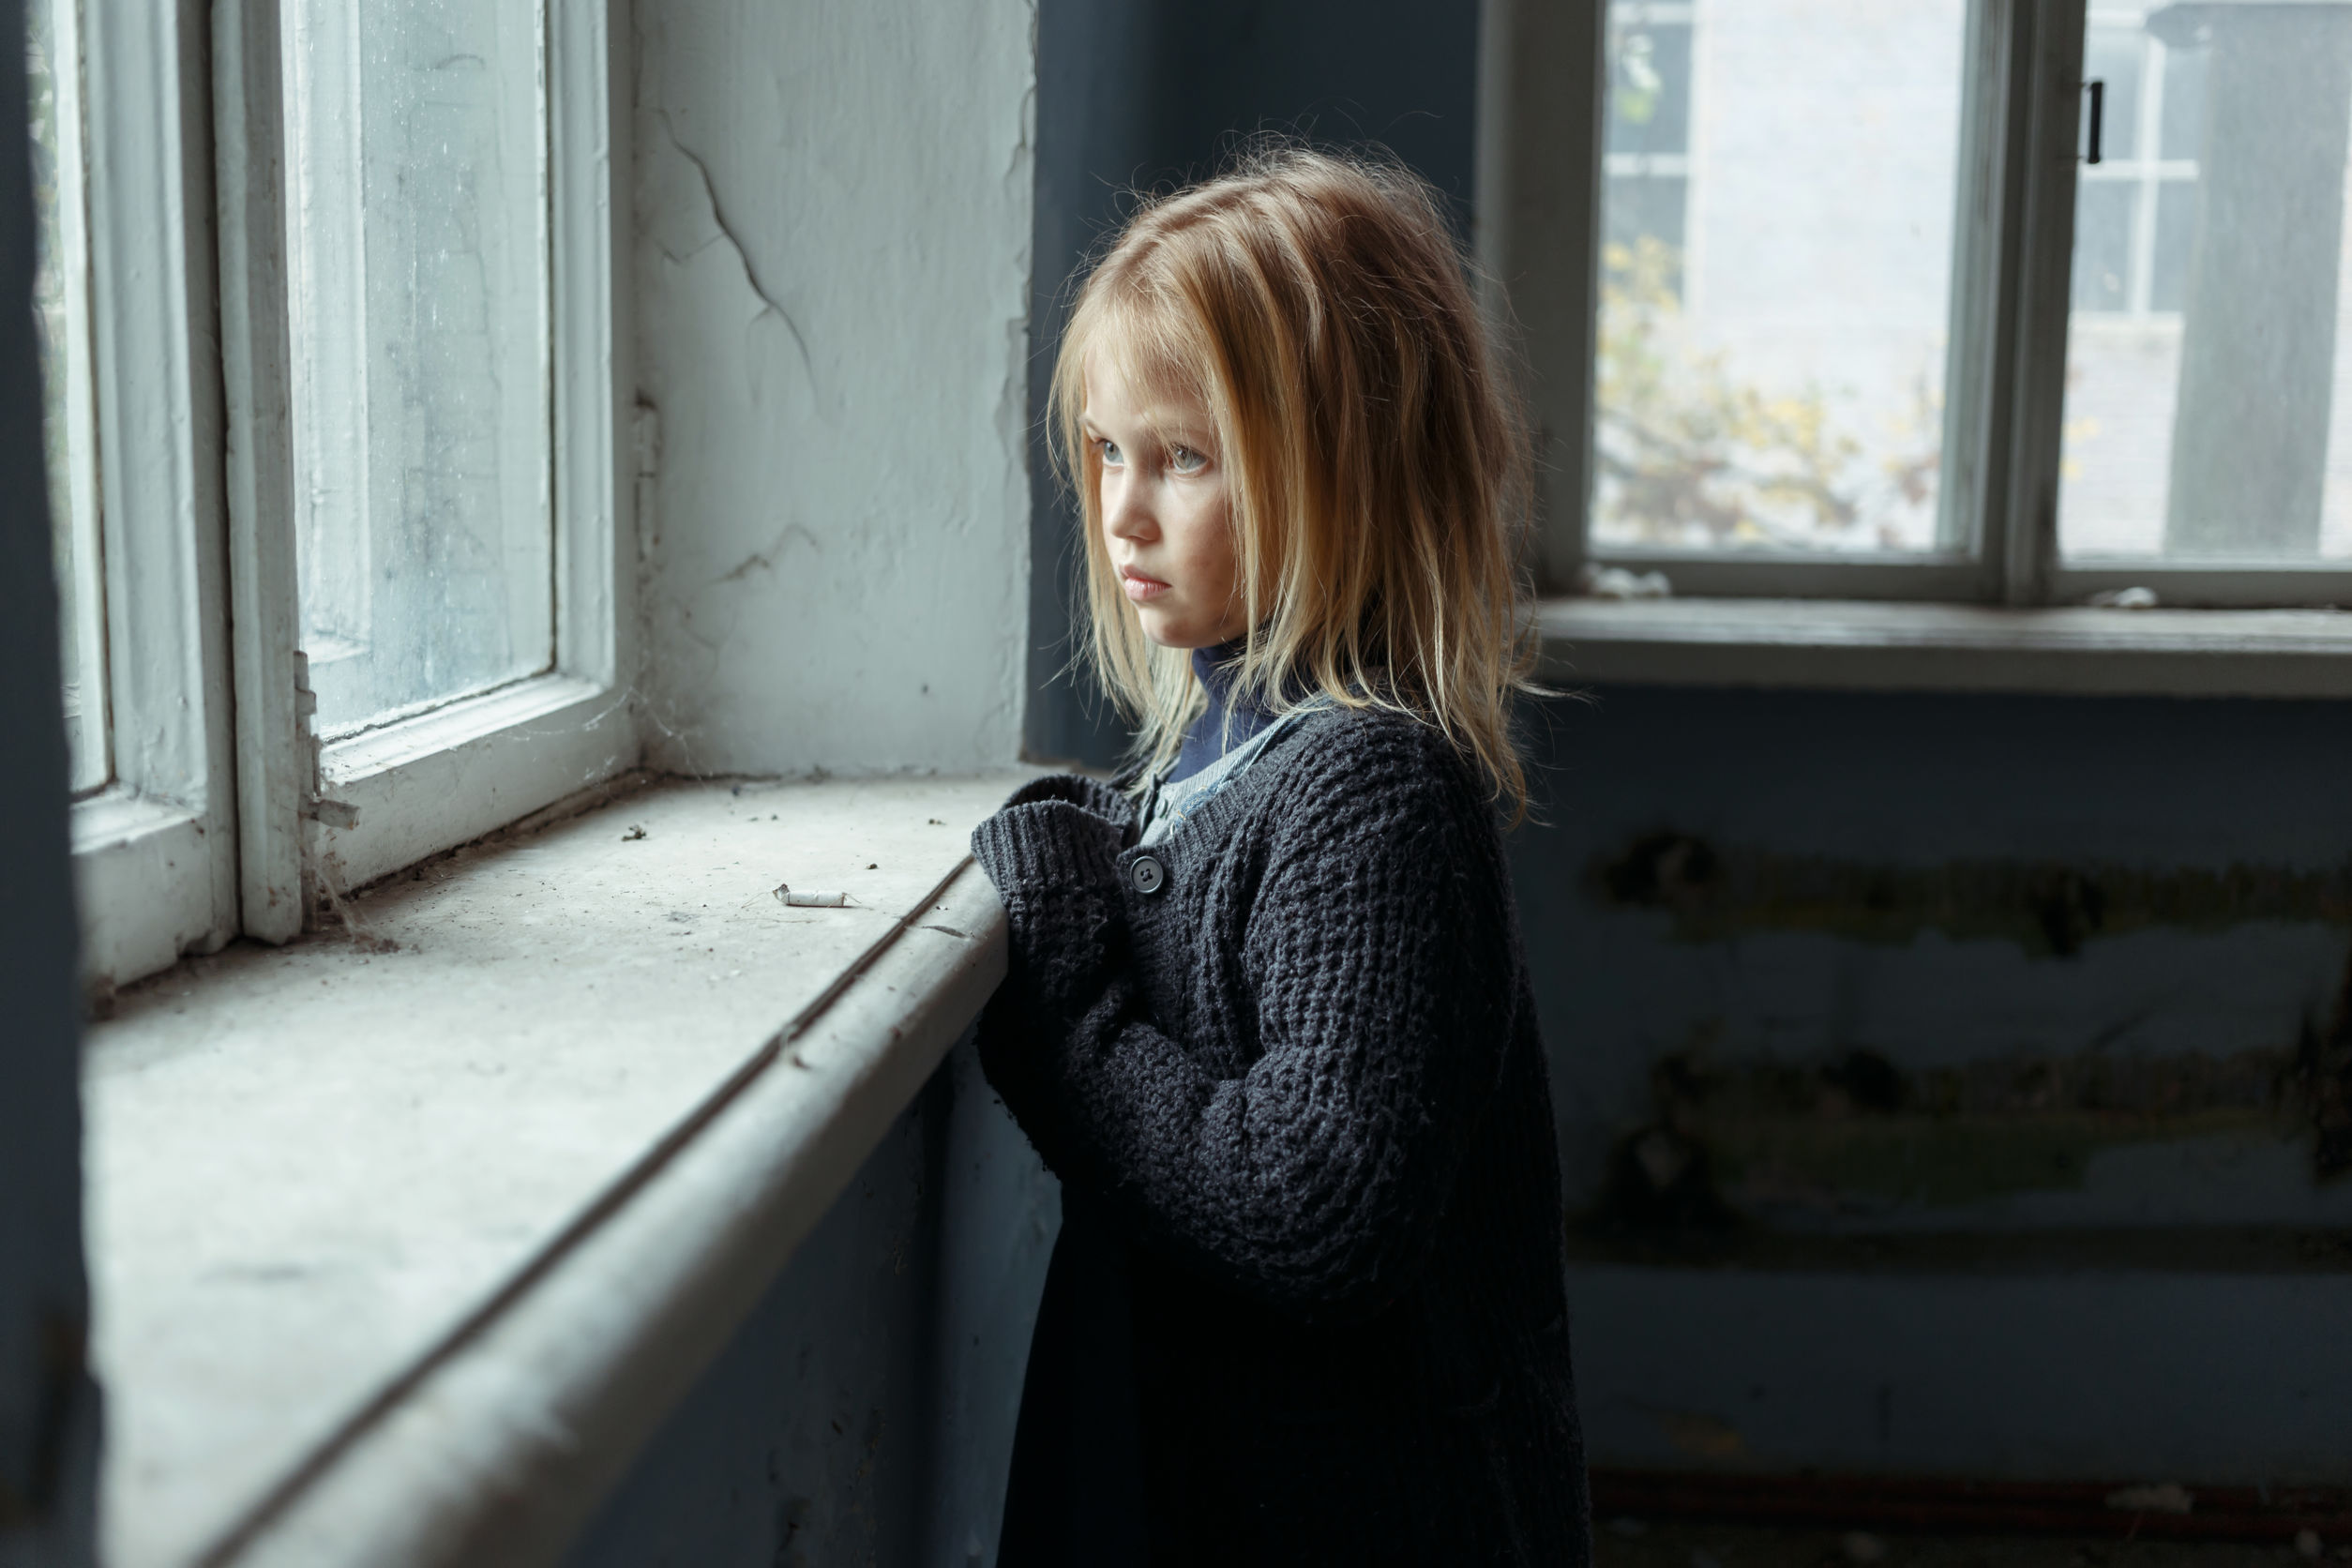 The types of child neglect